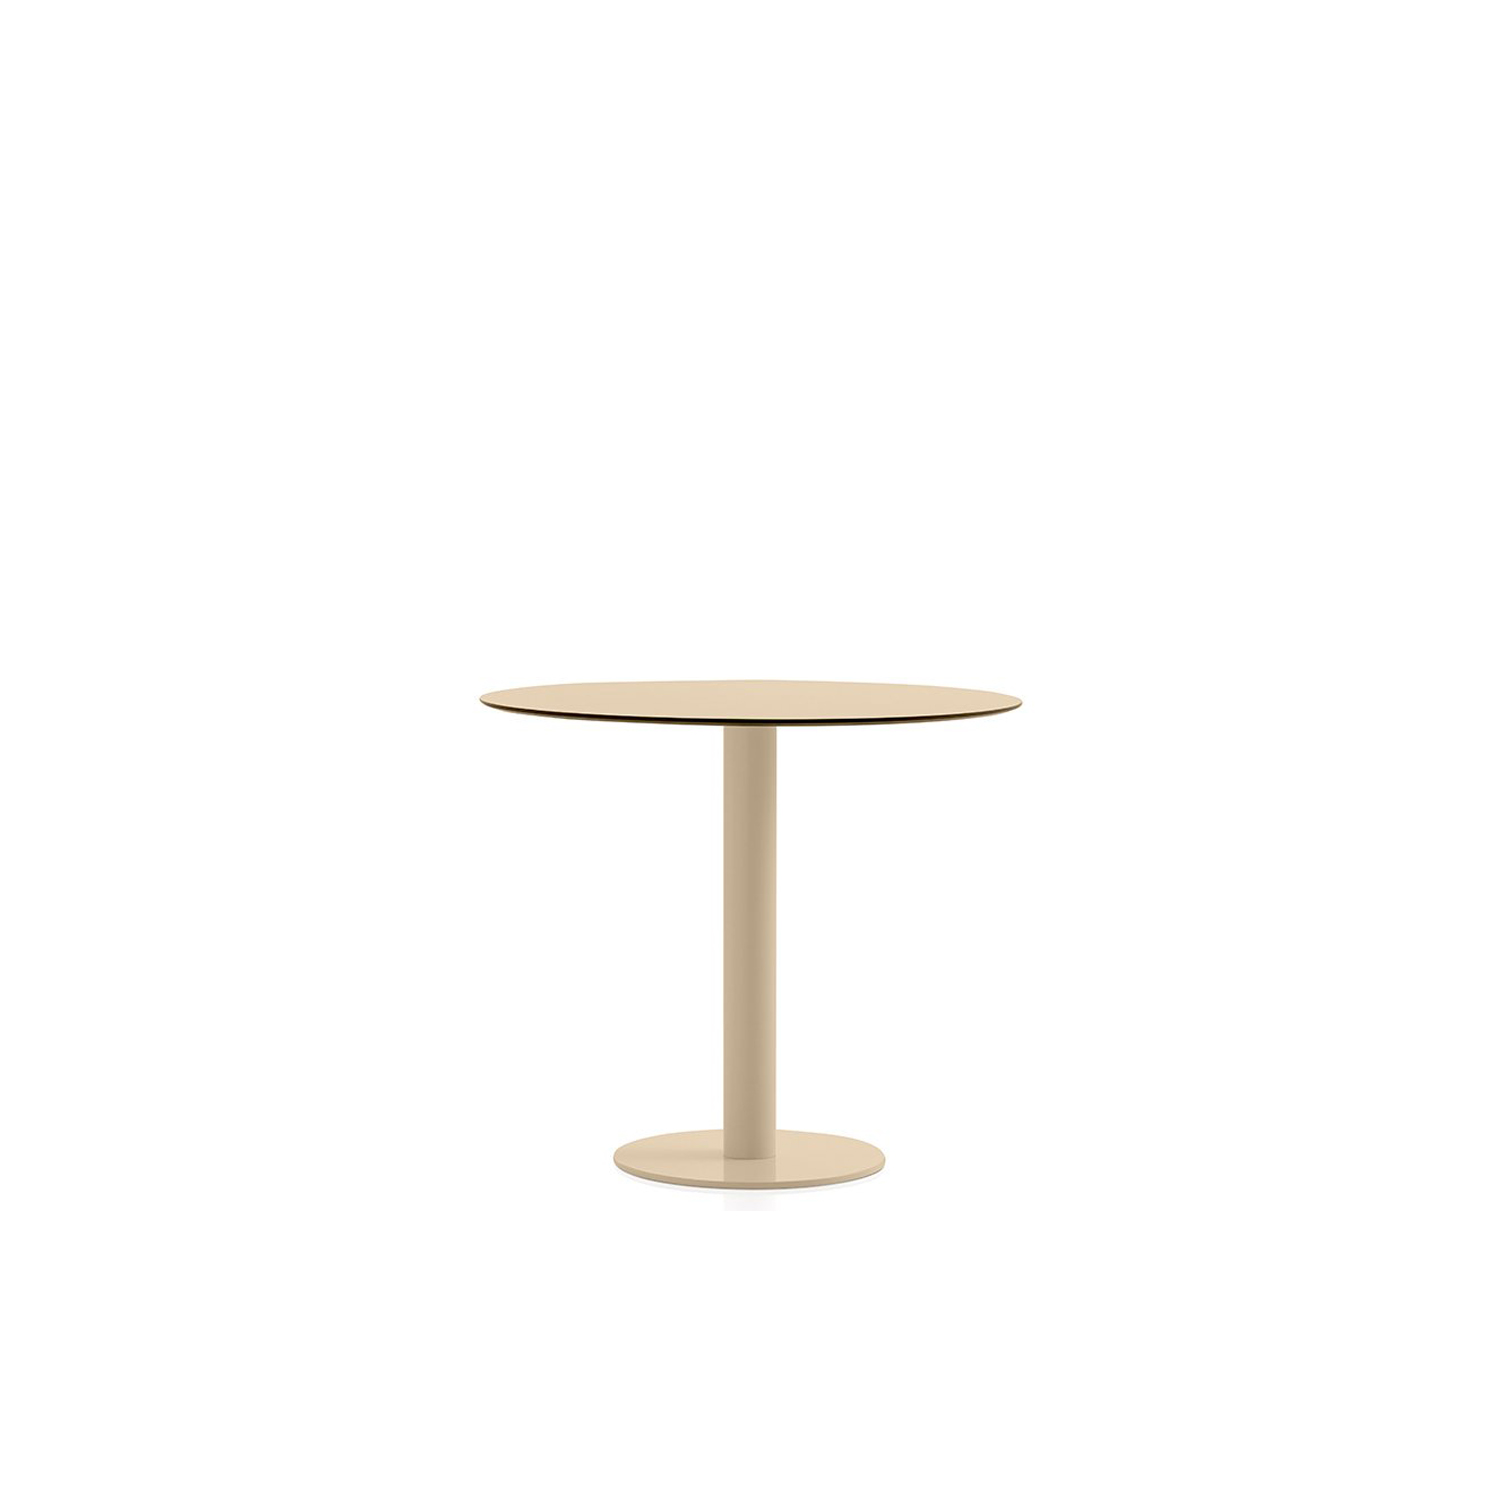 Mona Coffee Table - This is our low round table from the Mona series, a design with a single-leg structure to which you can give a lot of different uses. It can work as a coffee table or as an auxiliary table, depending on the tabletop diameter you select. There are three sizes available: 70, 80 and 90 cm. Aside from its design, which works well with many styles, a big part of its appeal is its multiple colour options.